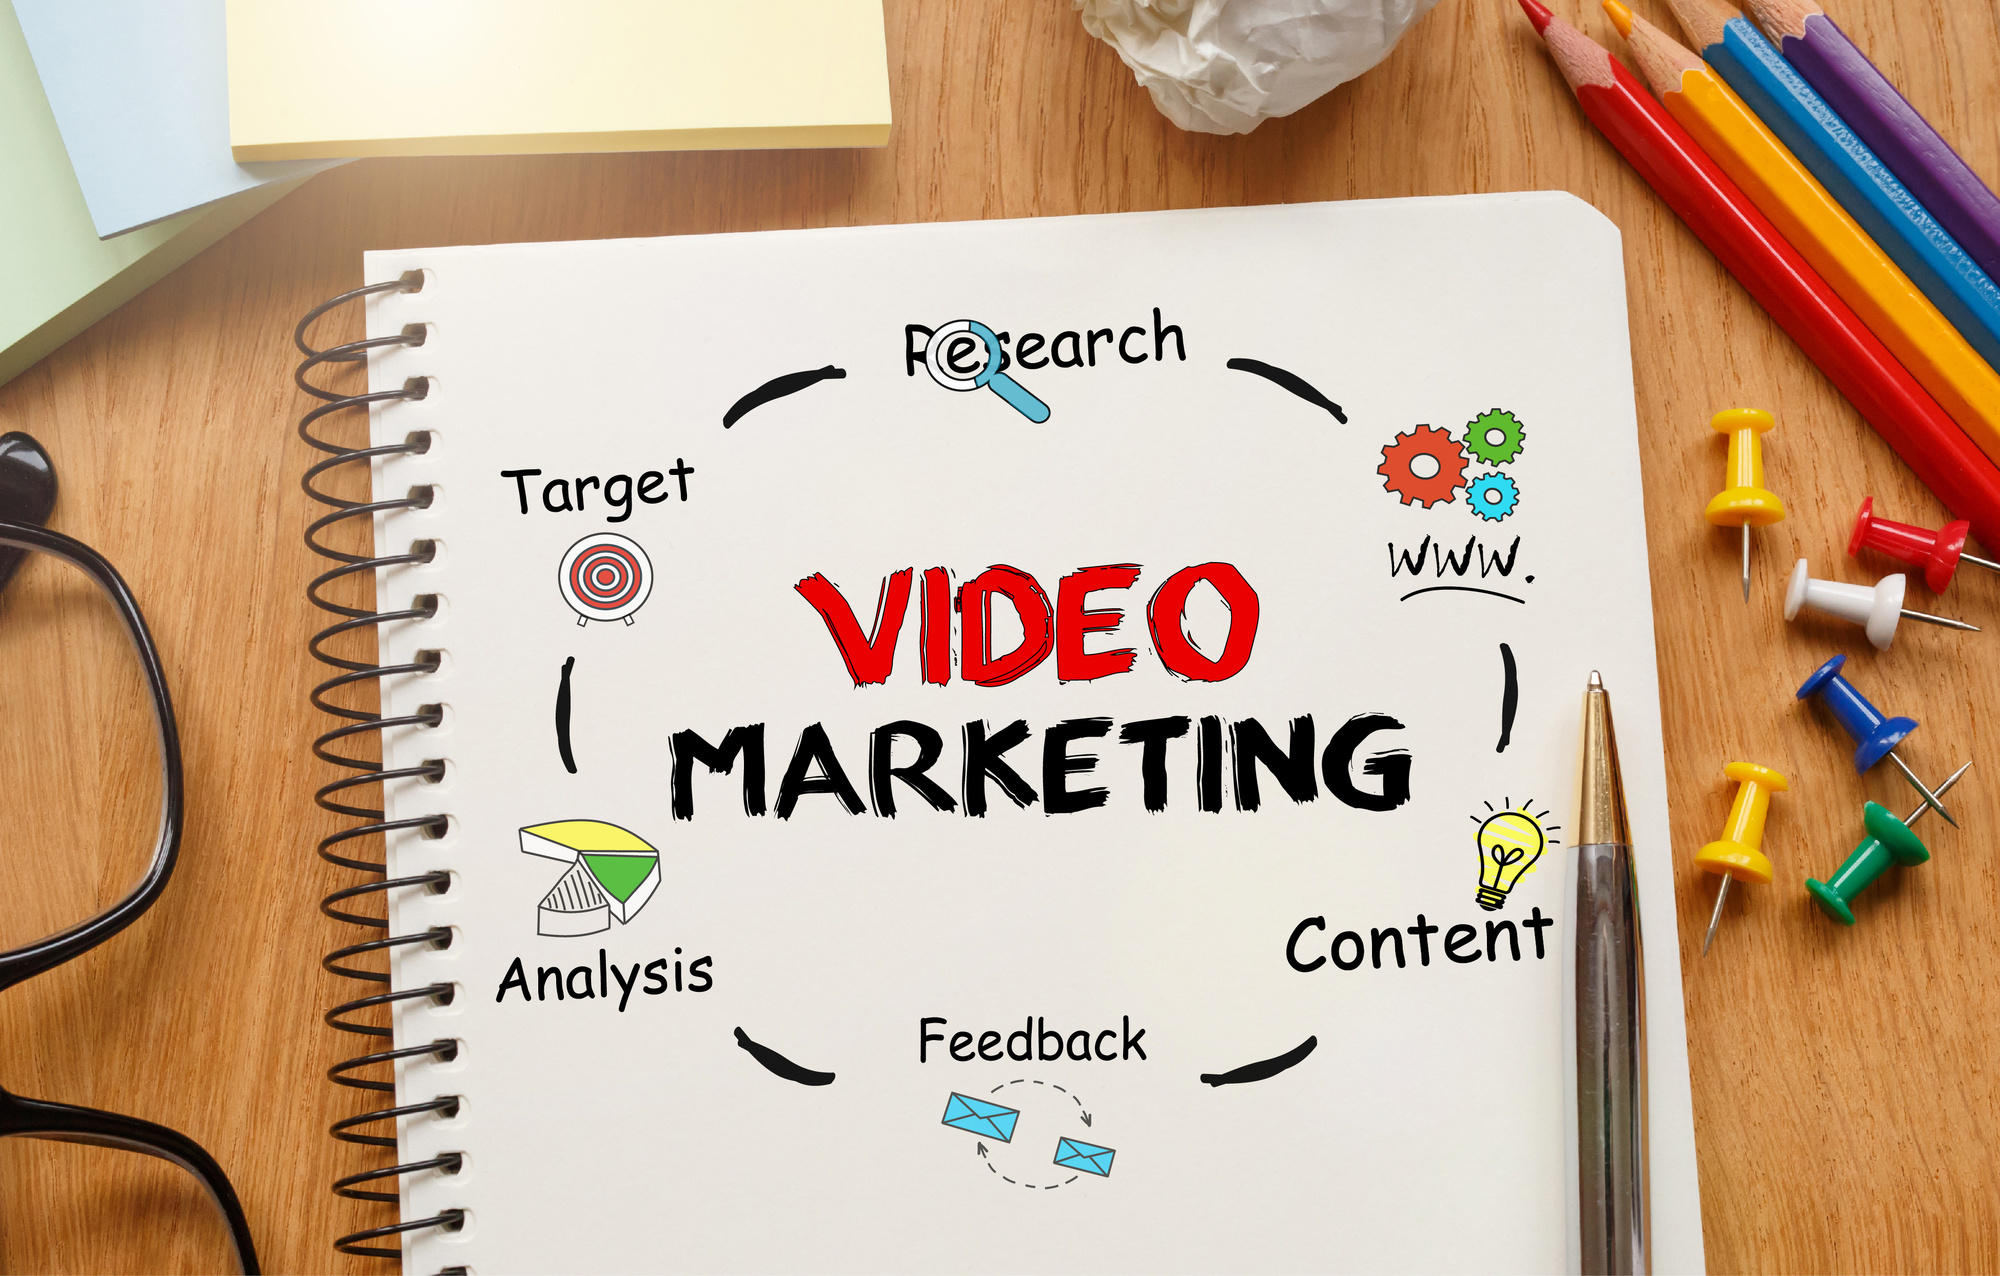 If a picture is worth a thousand words a video is worth a million. Find out how using videos for marketing will accelerate your sales and success.